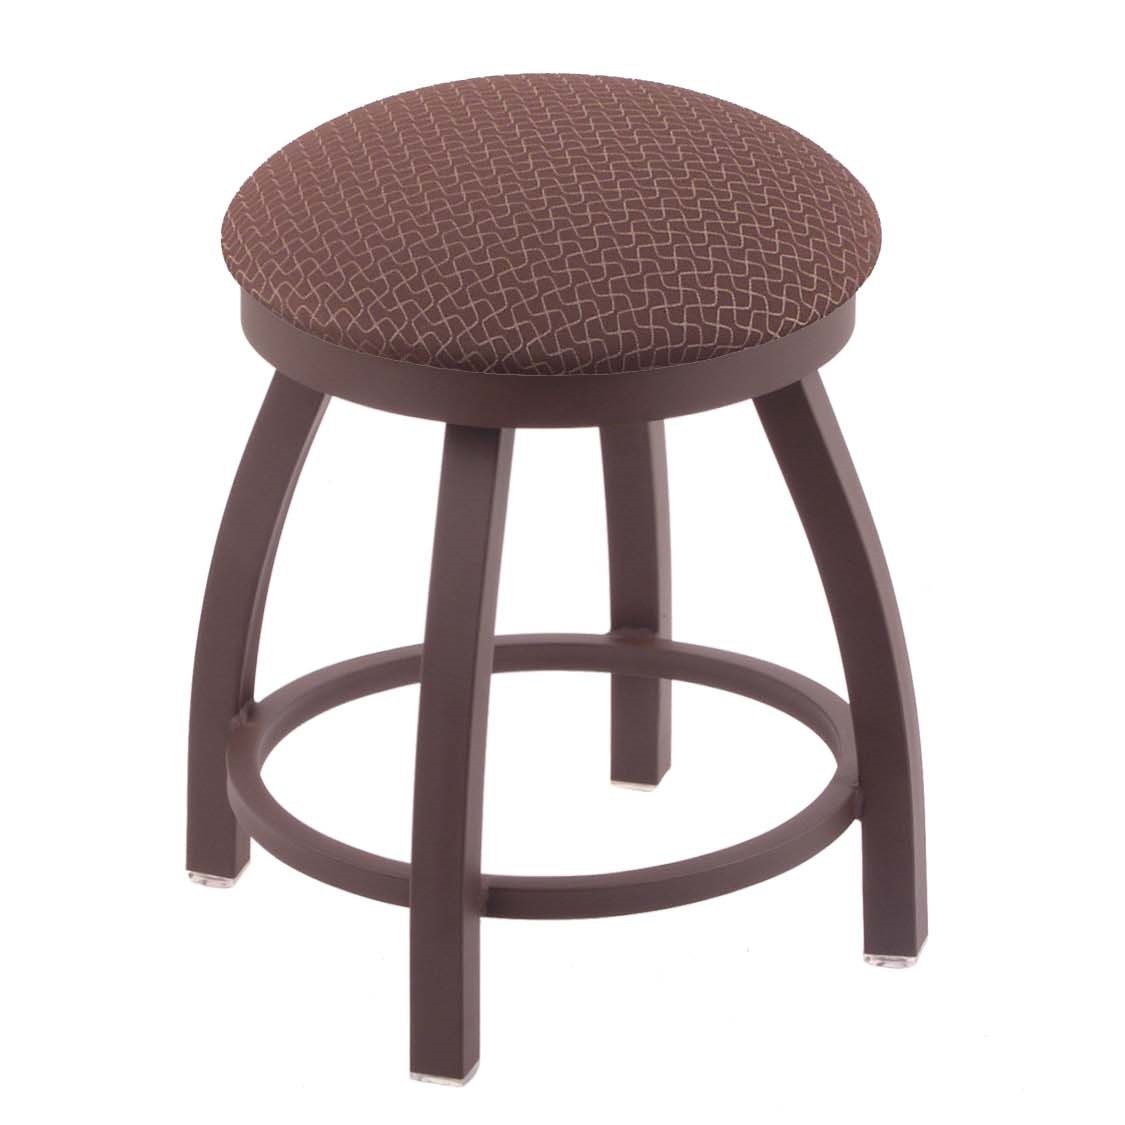 Holland Bar Stool Co. 802 Misha Vanity Stool with Bronze Finish and Swivel Seat, 18'', Axis Willow by Holland Bar Stool Co.